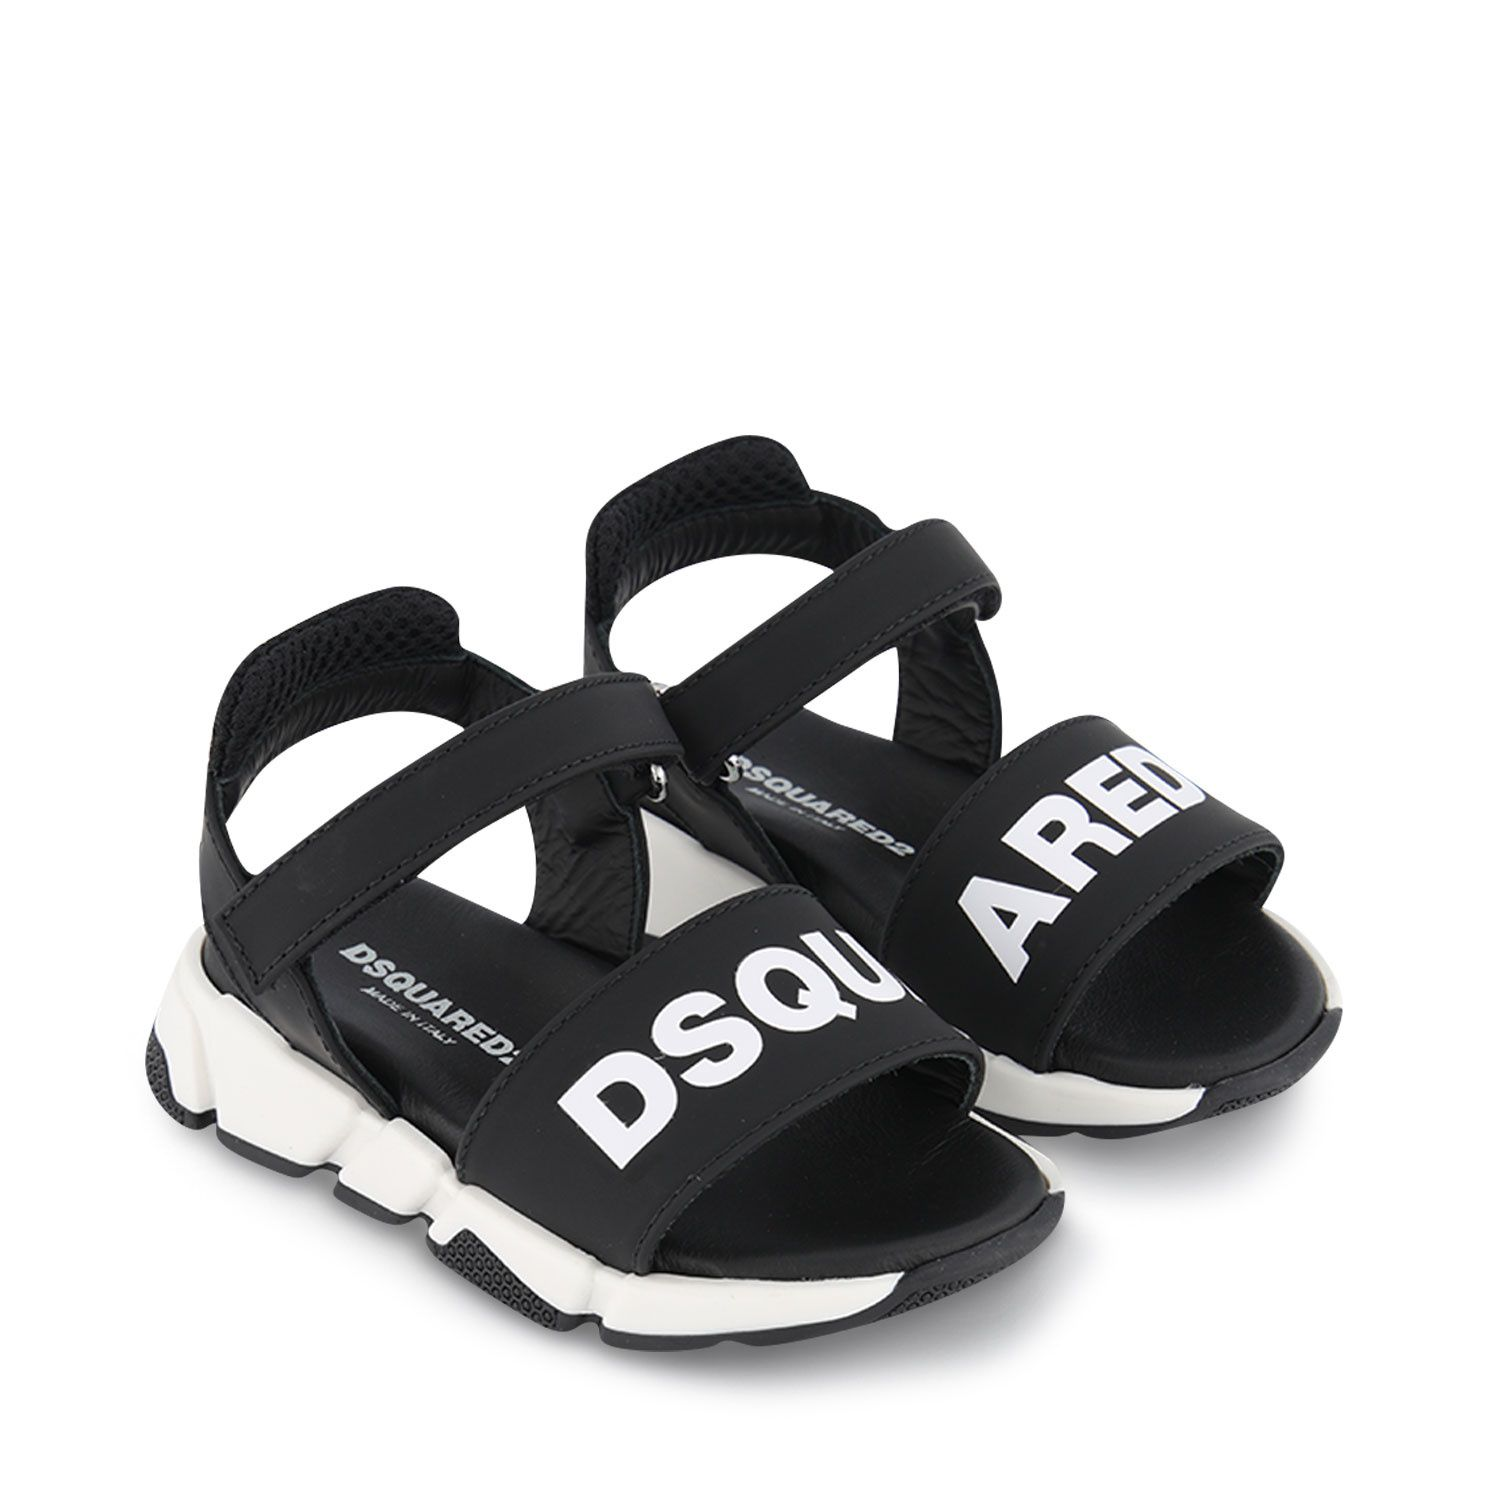 Picture of Dsquared2 66961 kids sandals black